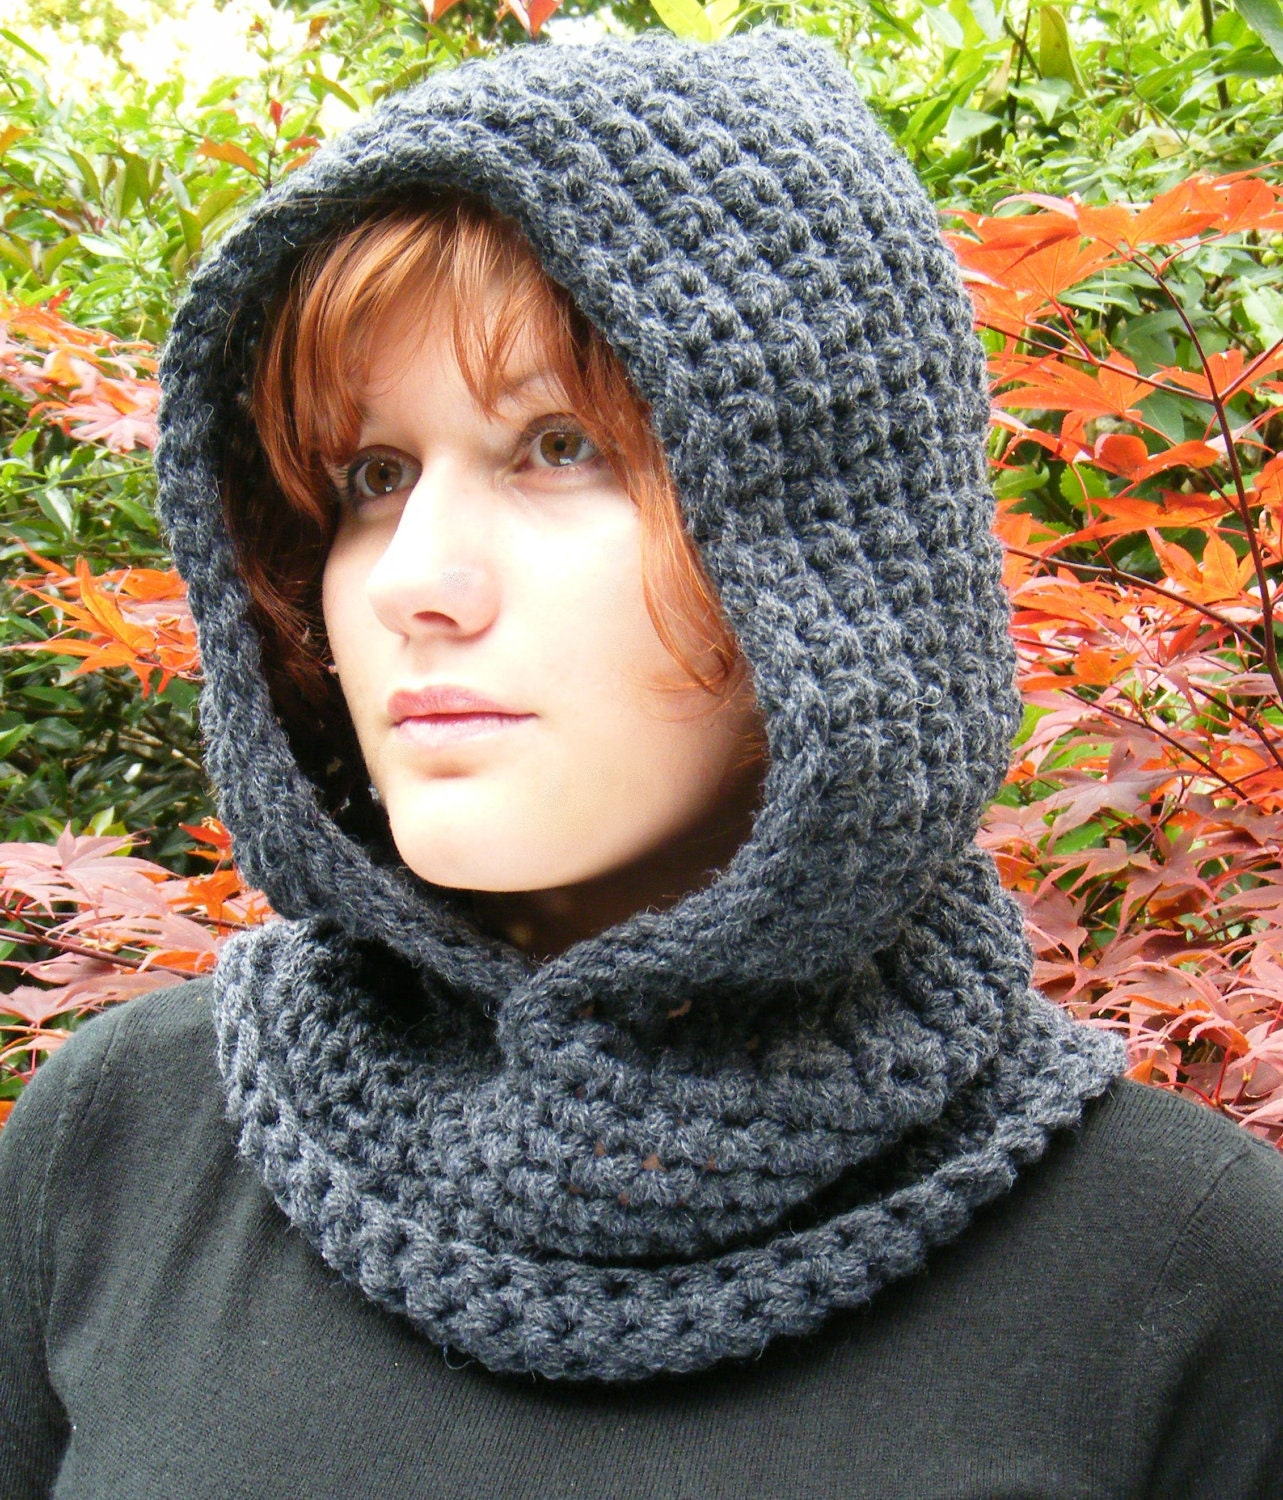 Crochet Pattern Free Hooded Cowl : Crochet Hooded Cowl in Chunky Dark Grey by Corcra on Etsy